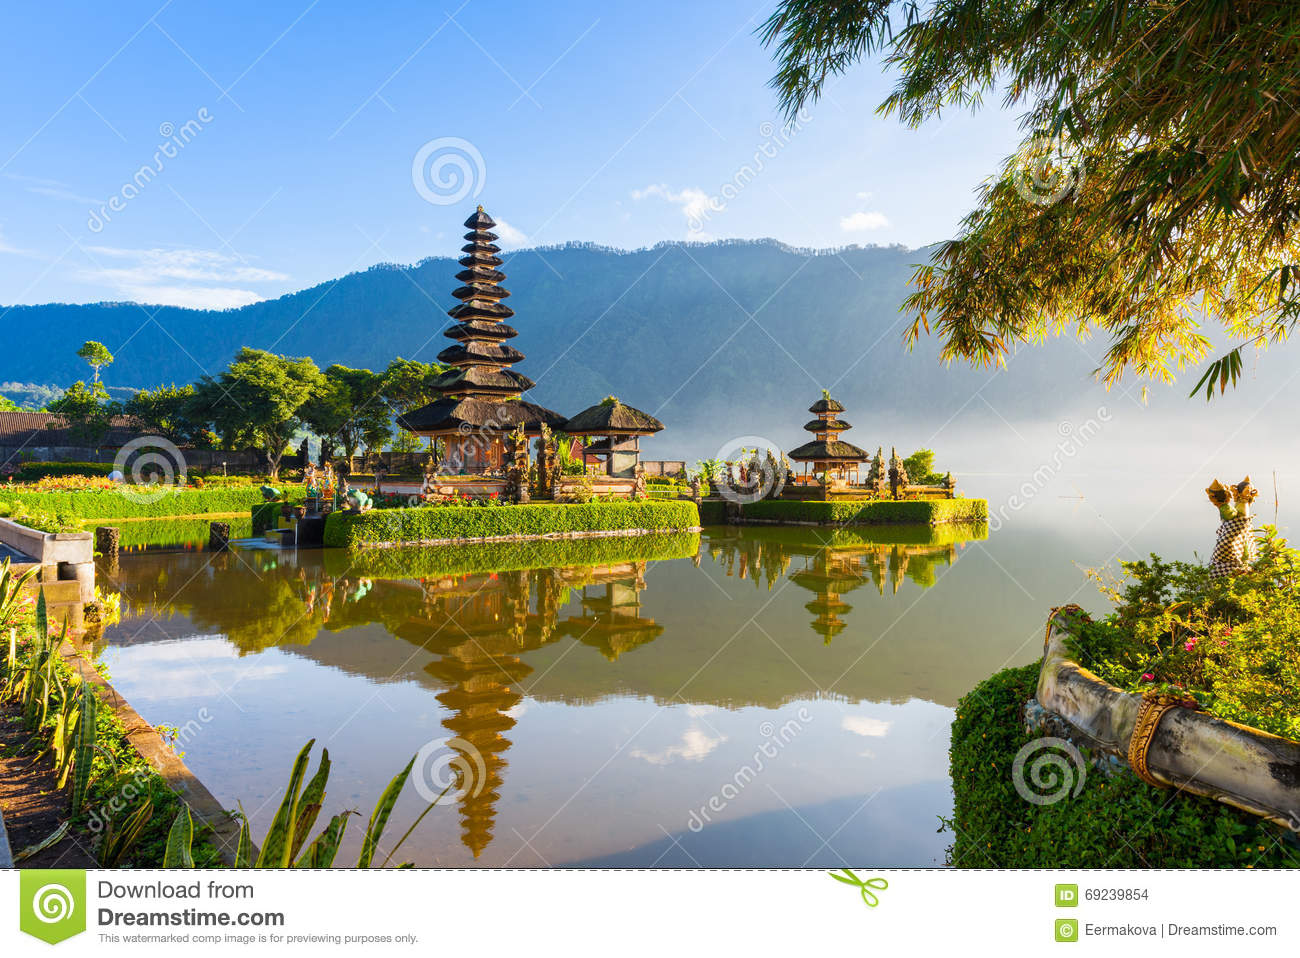 Pura Ulun Danu Bratan at sunrise, Bali, Indonesia